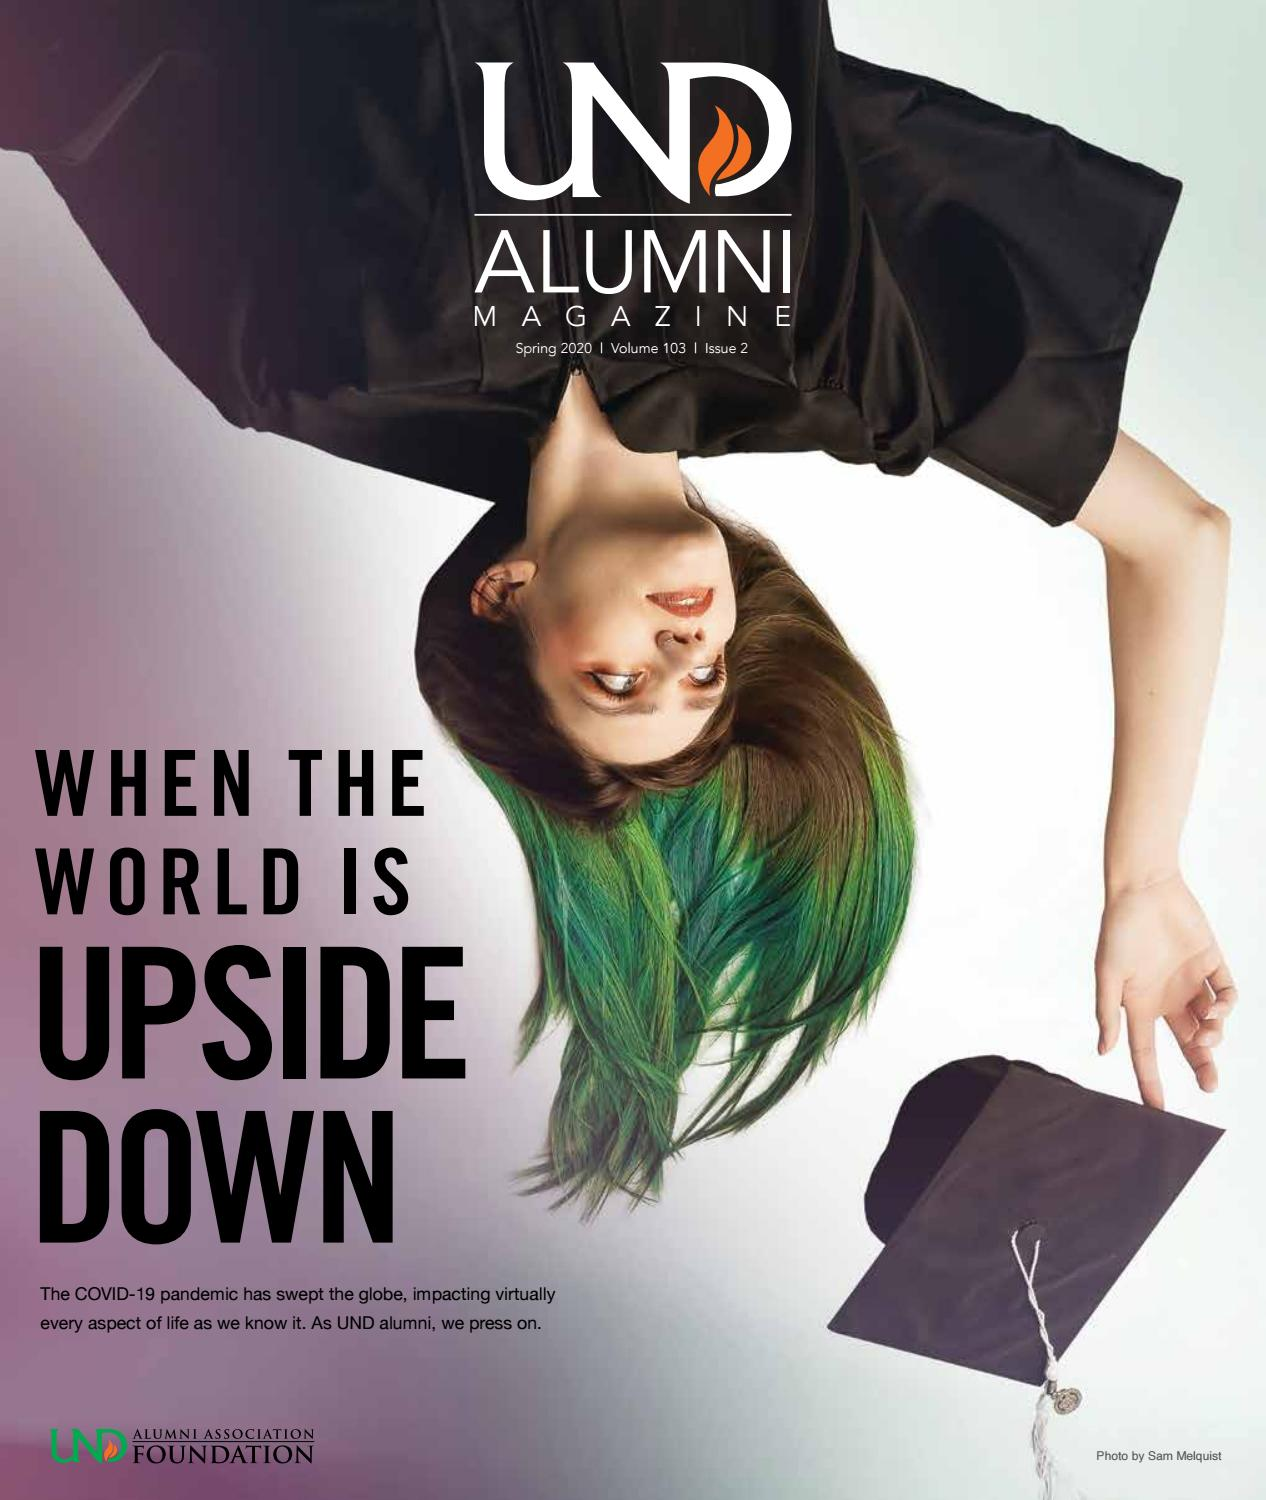 Und Alumni Magazine Spring 2020 By Und Alumni Association Foundation Issuu